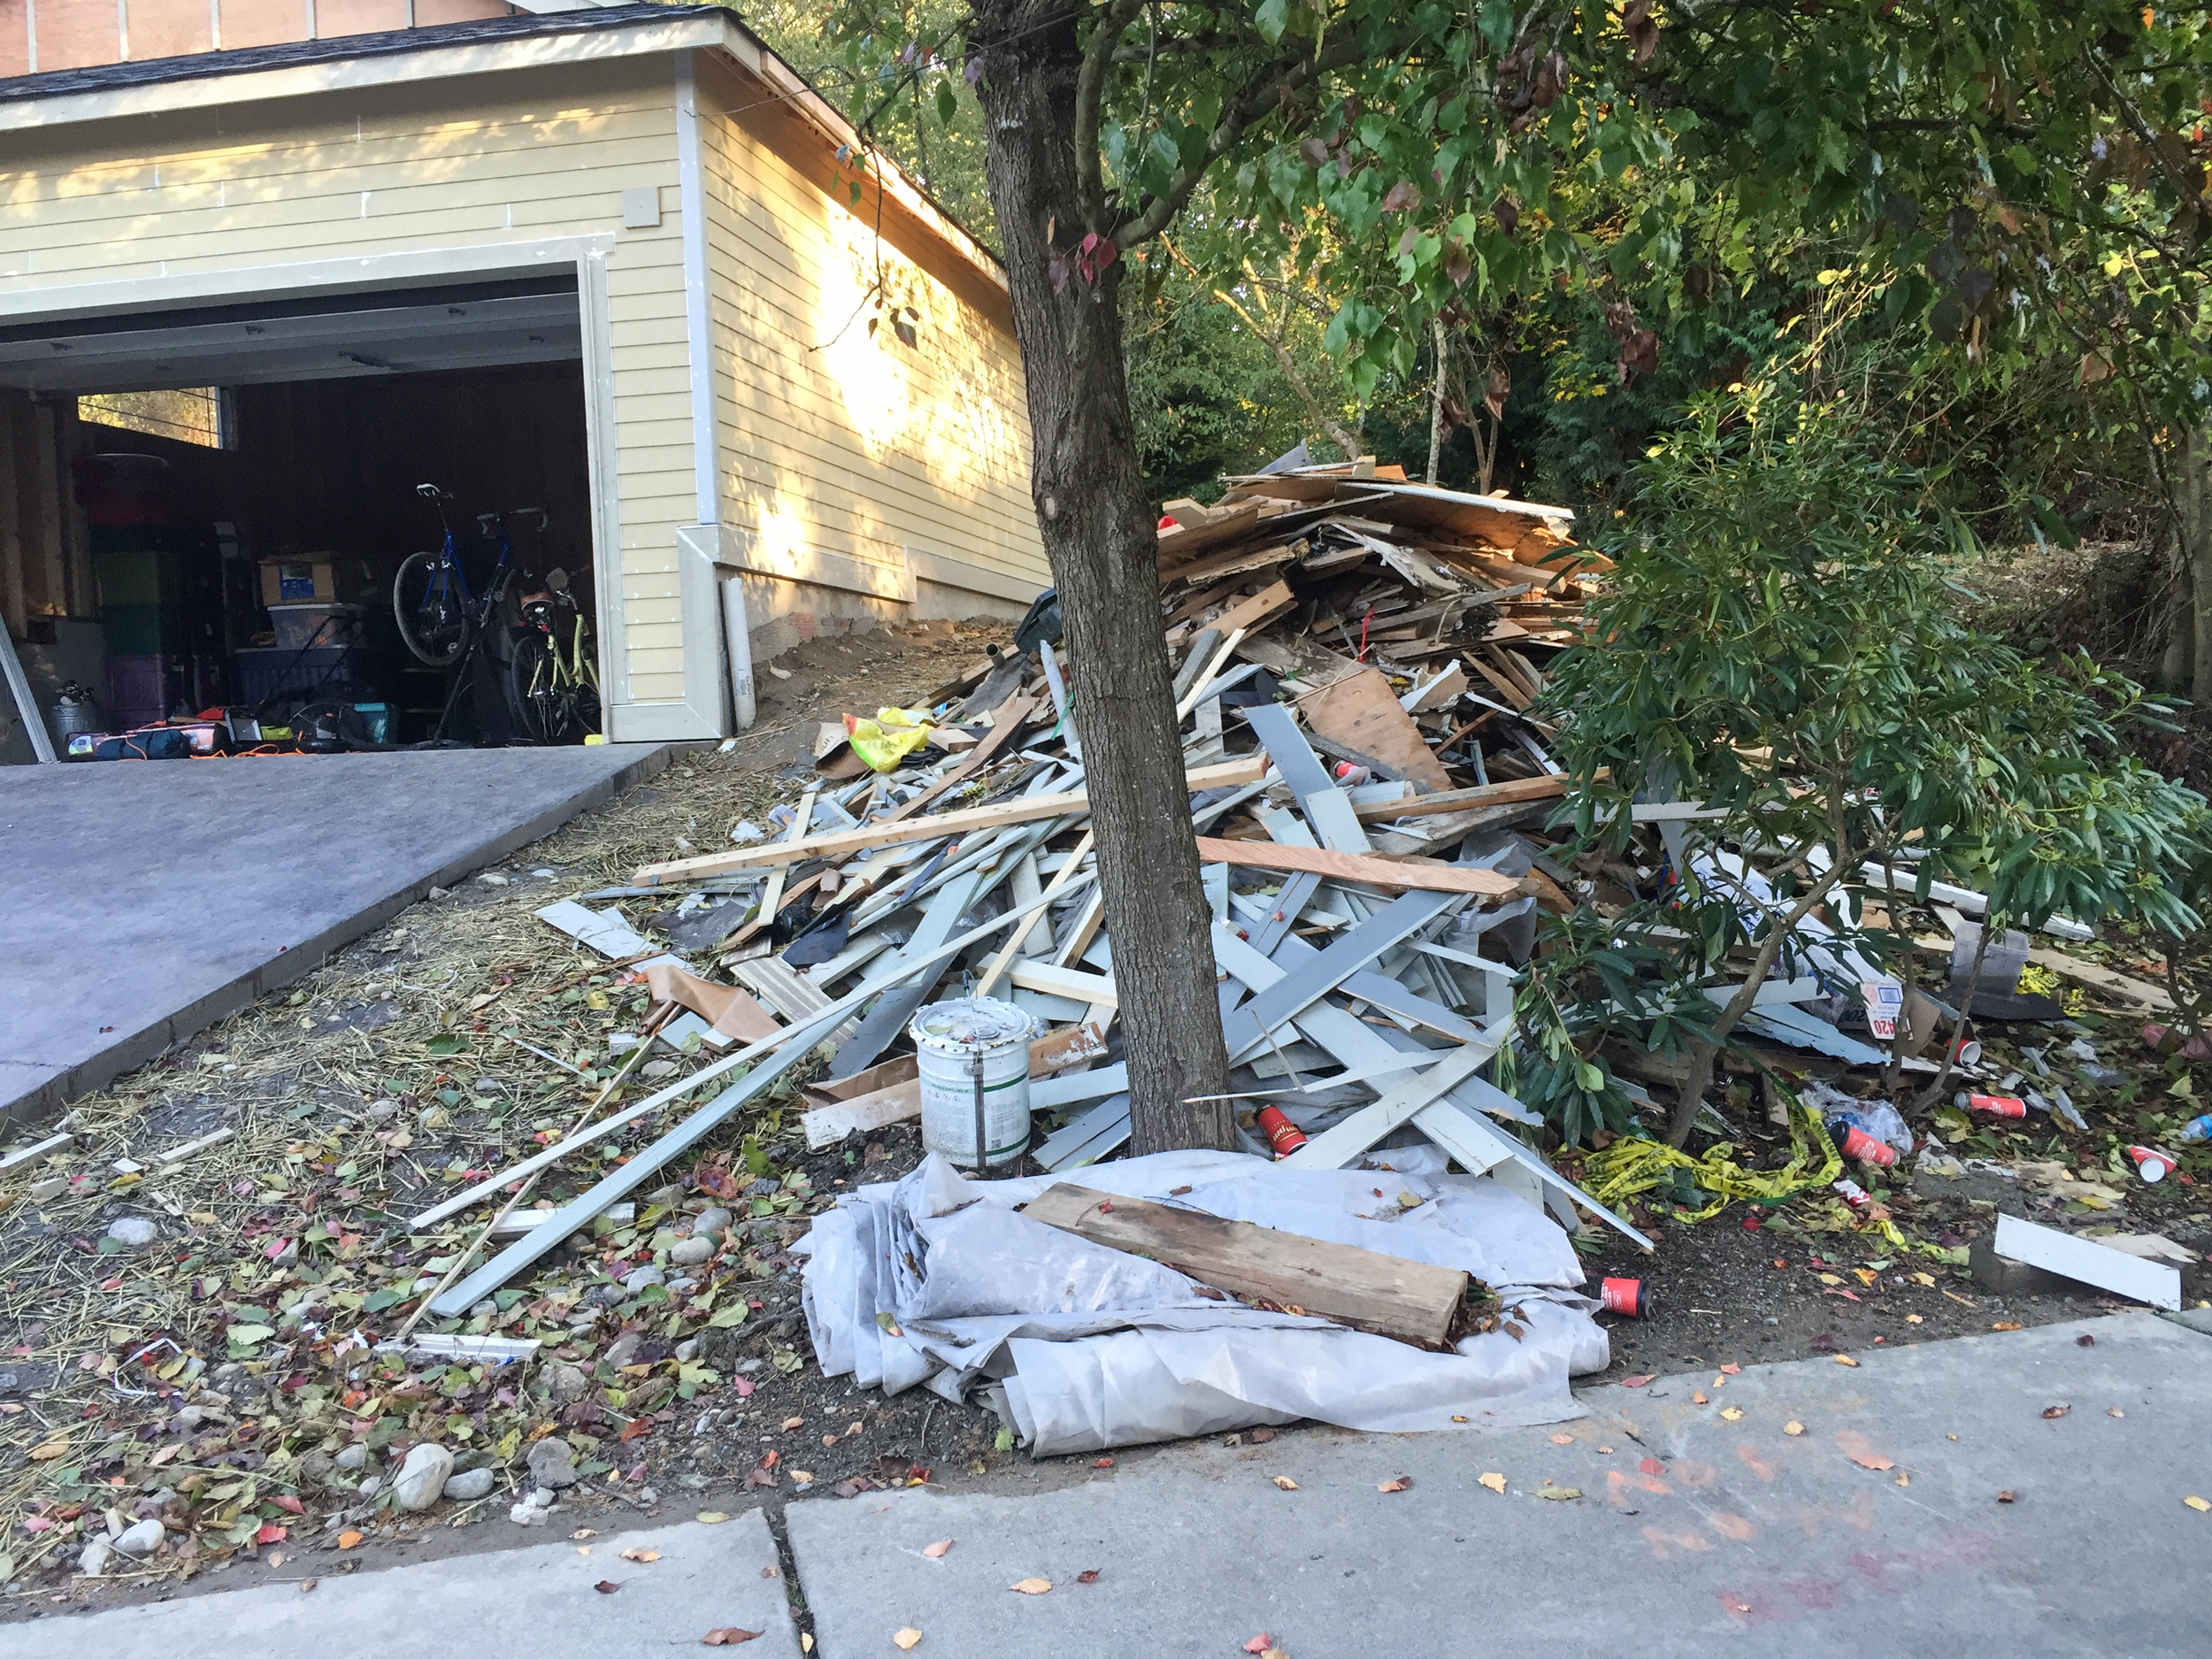 Neighbor's pile of discarded building materials.